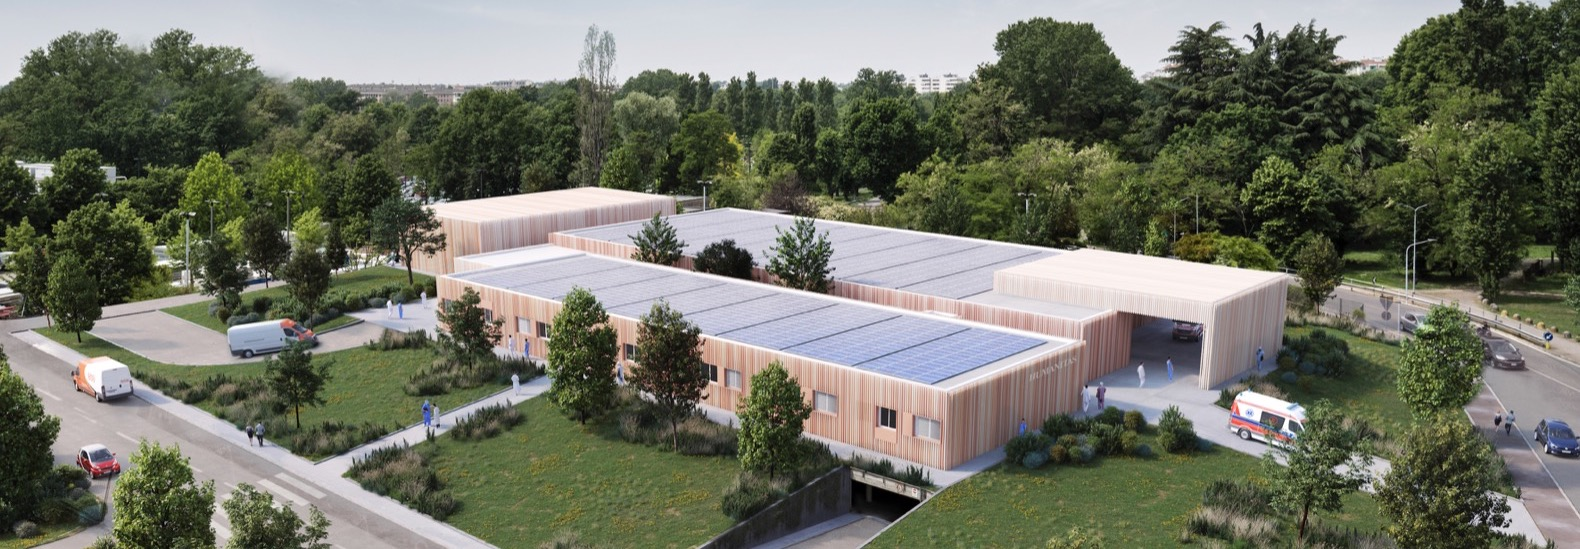 Modular Emergency Hospital 19 pops up in Italy in just 3 months